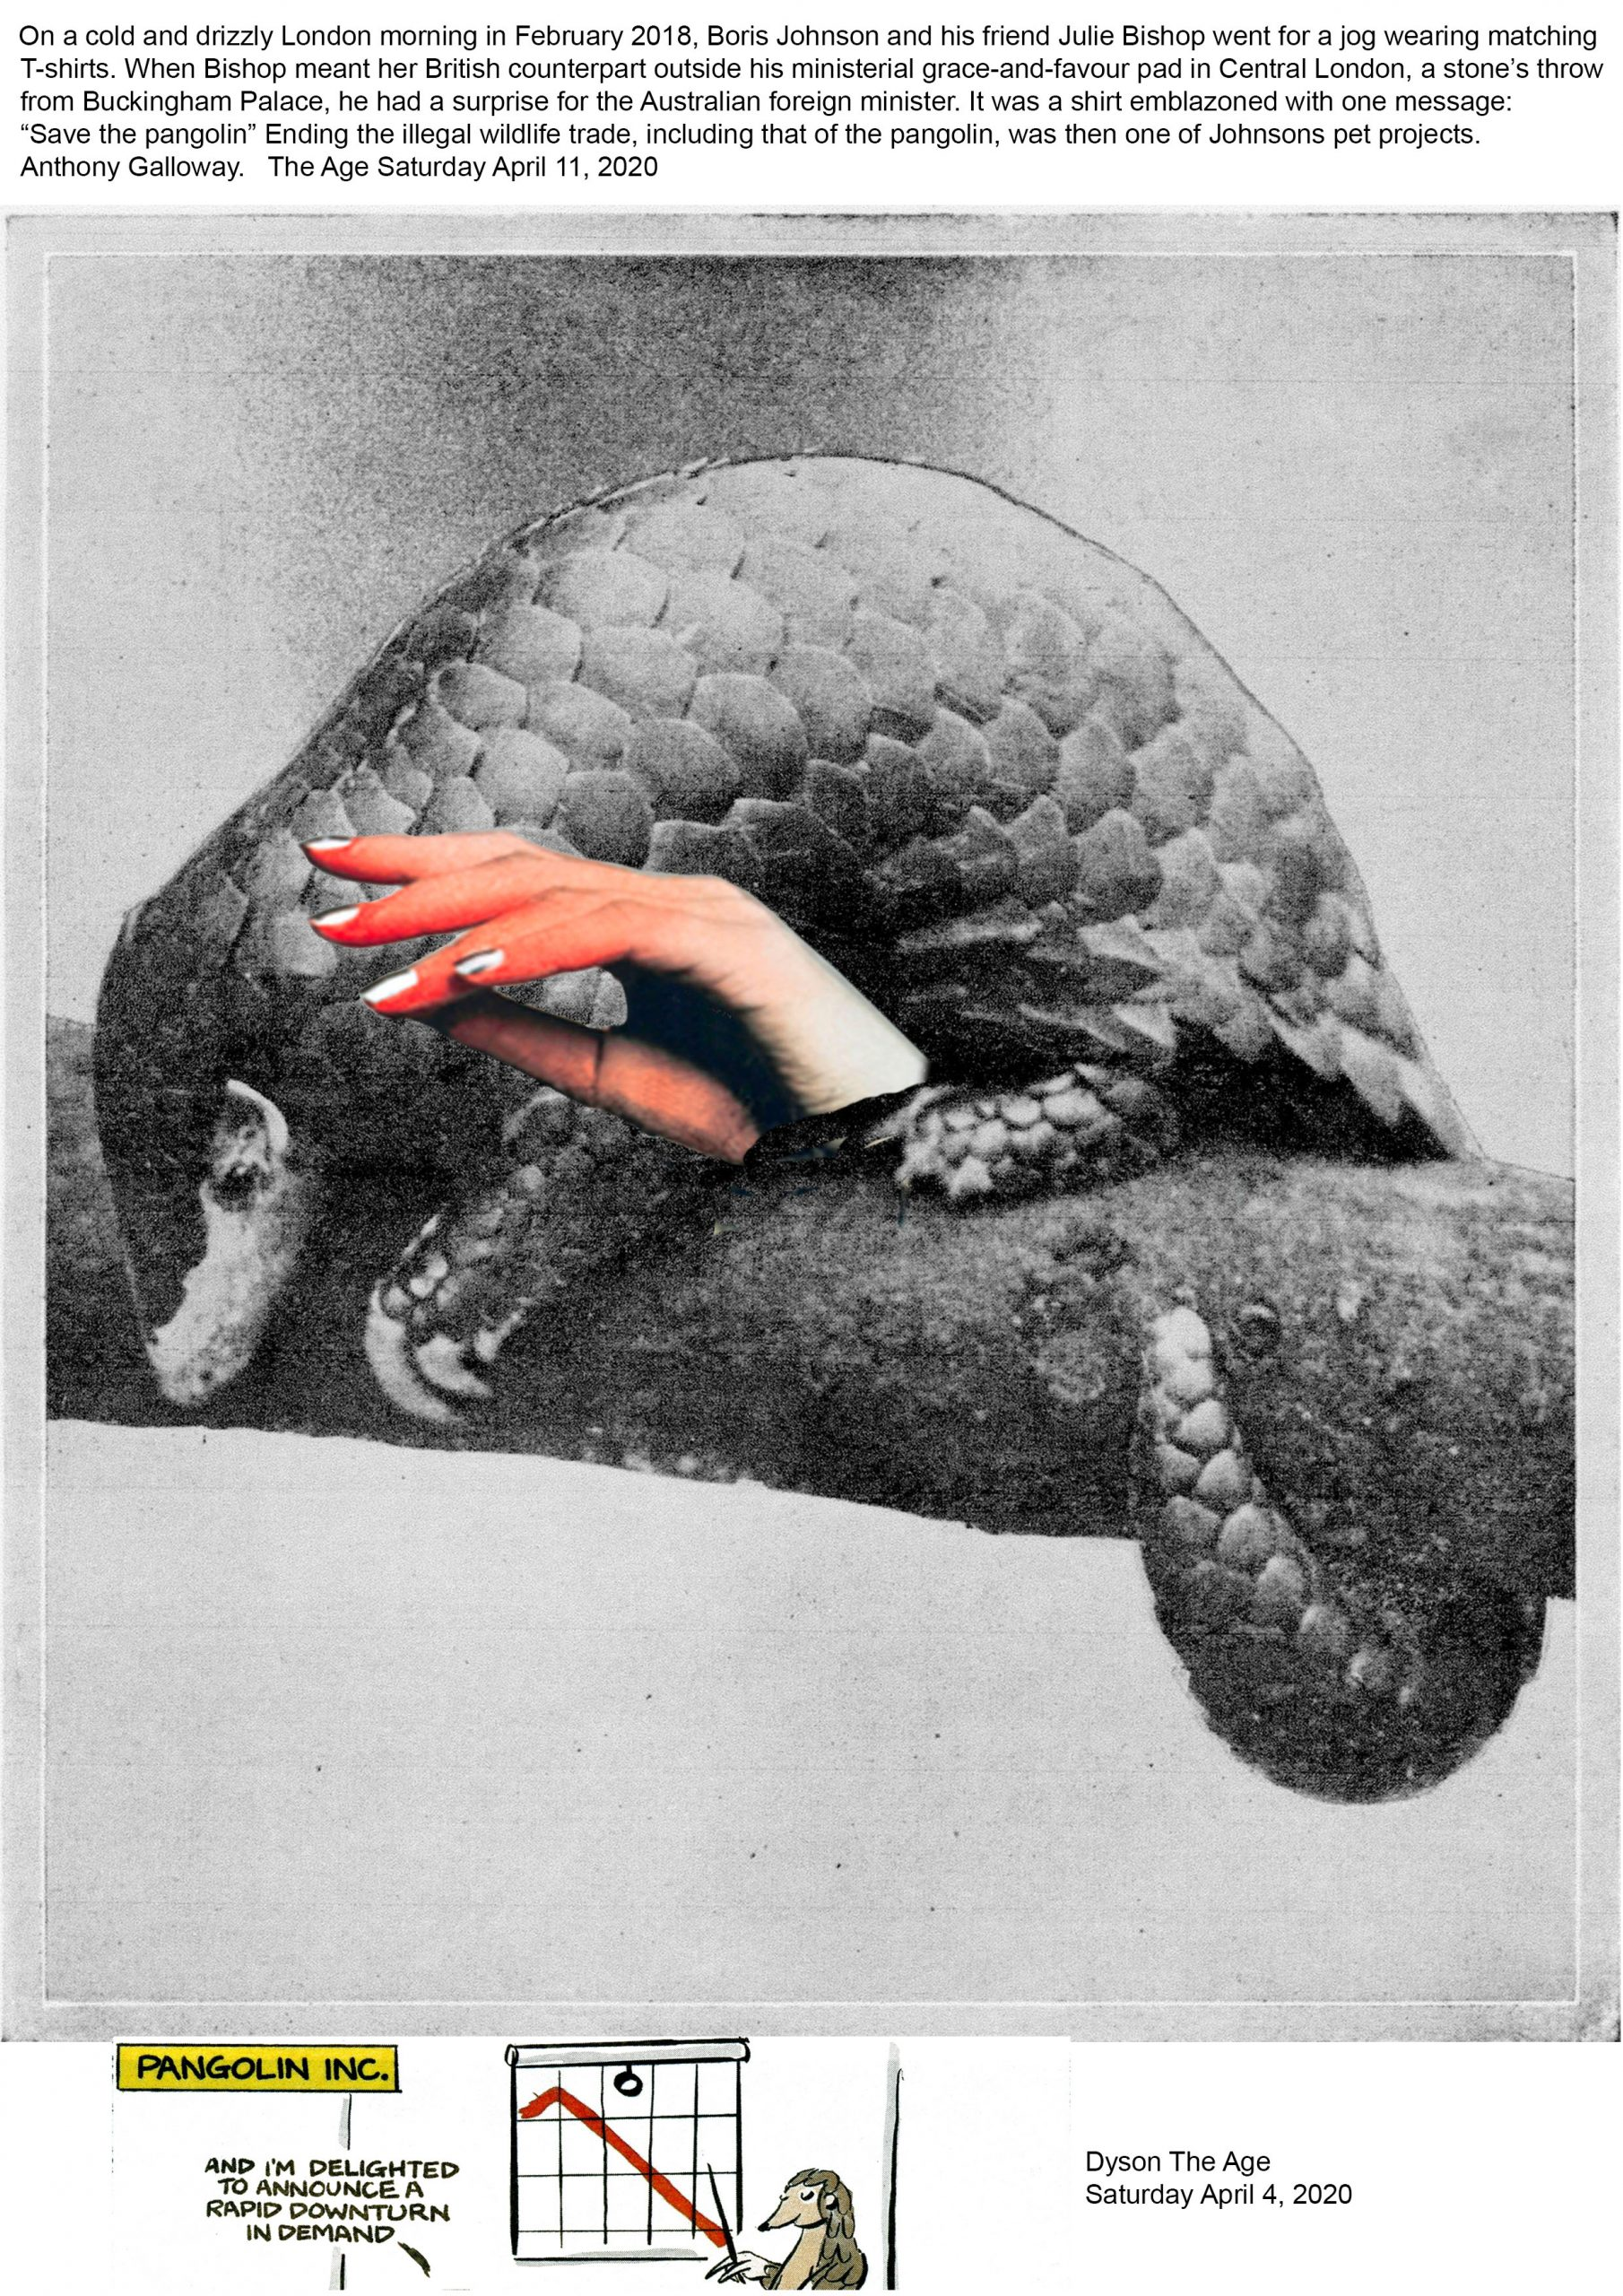 (44) Viki Petherbridge - Animals in armour. The pangolin: May they suffer no more. Image